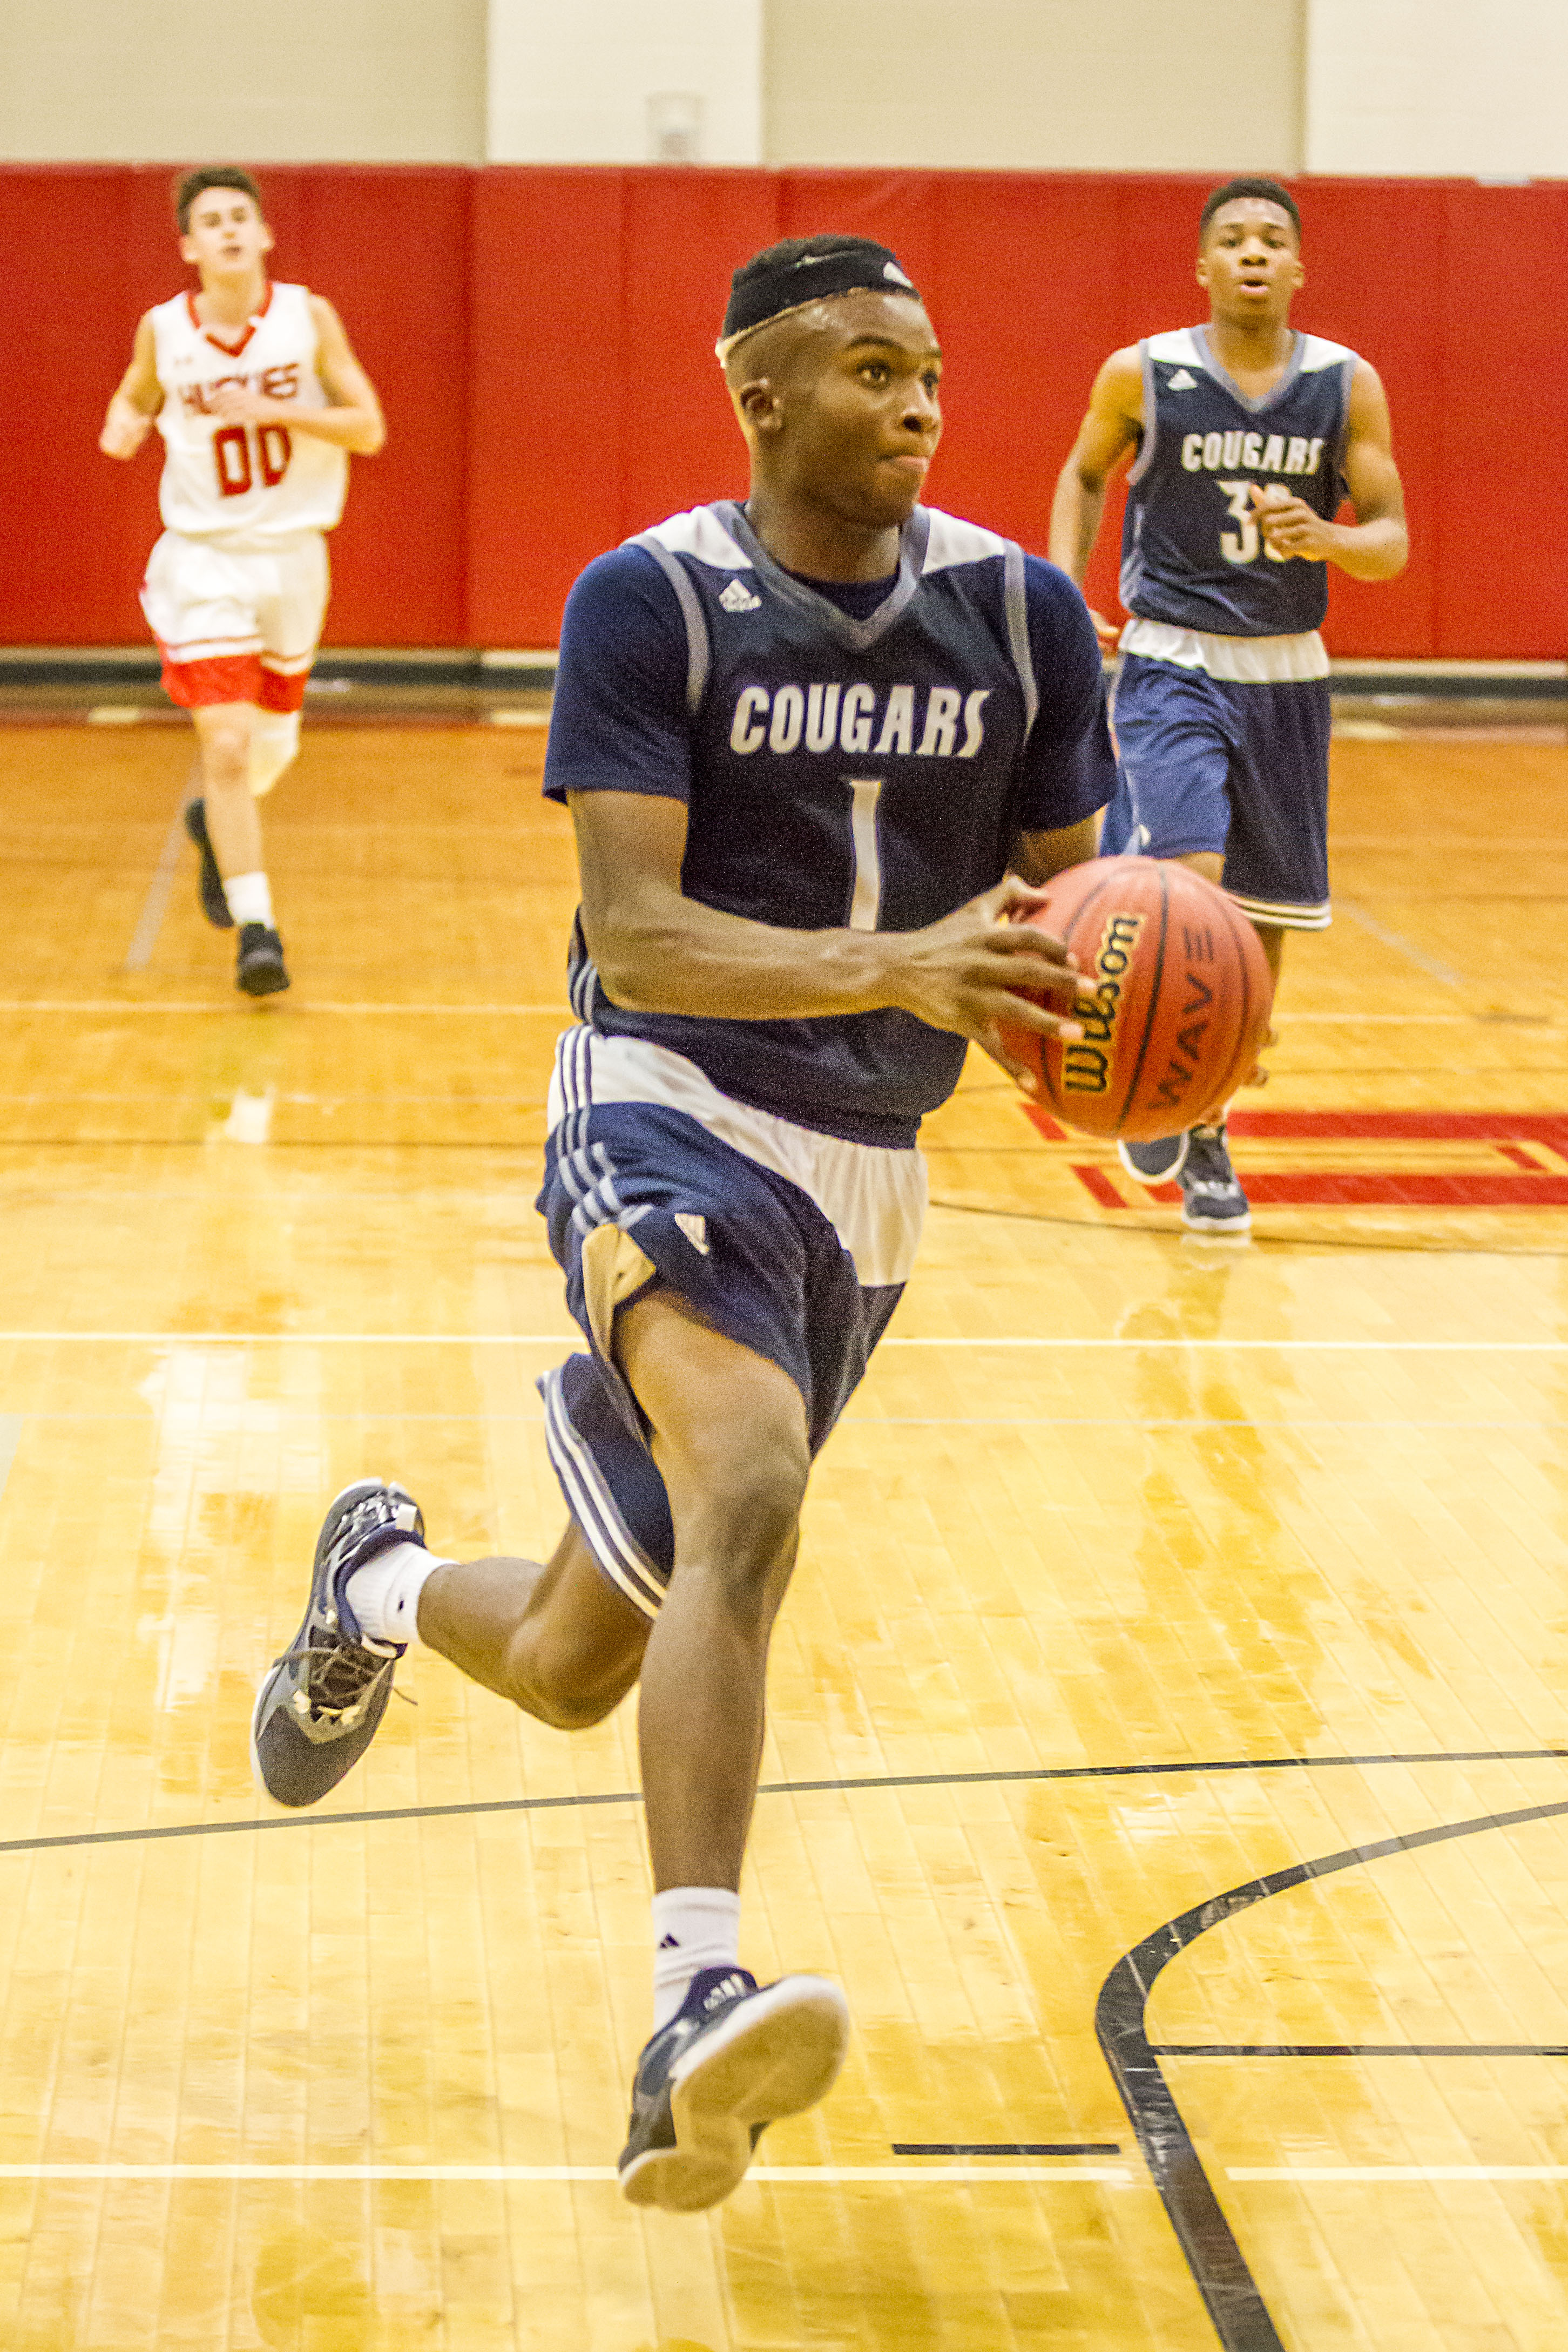 Dominant 4th quarter sends Cougars to victory over Huskies